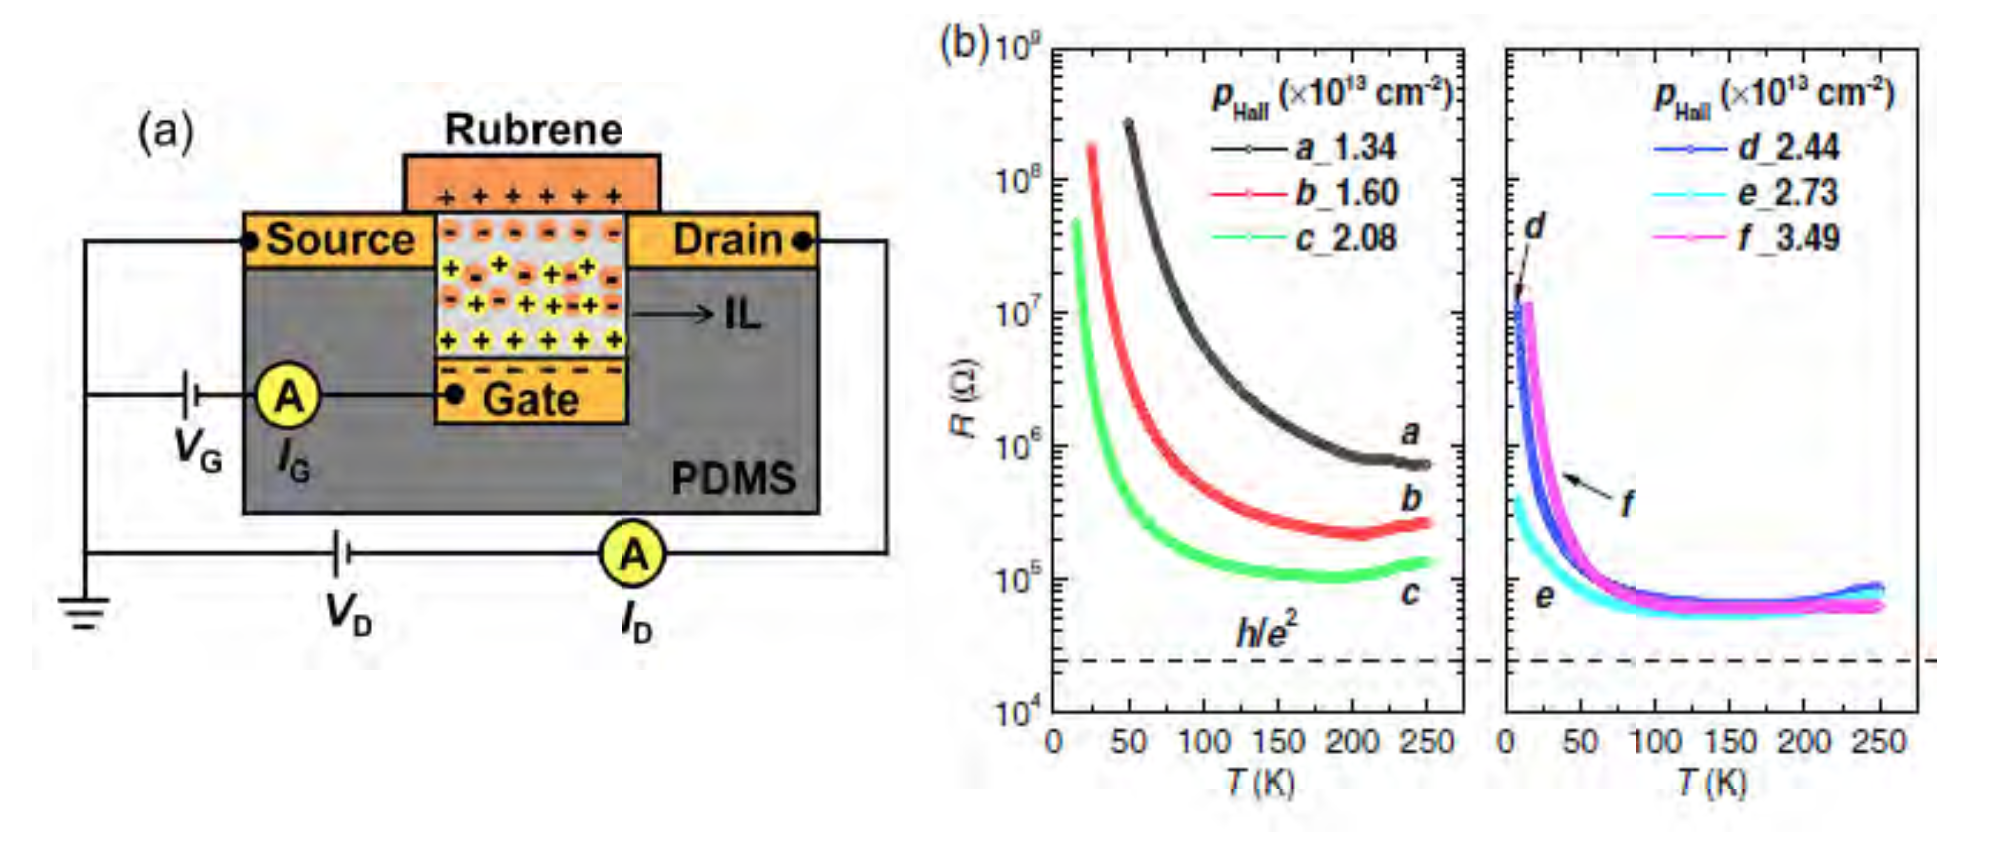 Approaching a Two-Dimensional (2D) Metallic State on the Surface of the Organic Semiconductor Rubrene